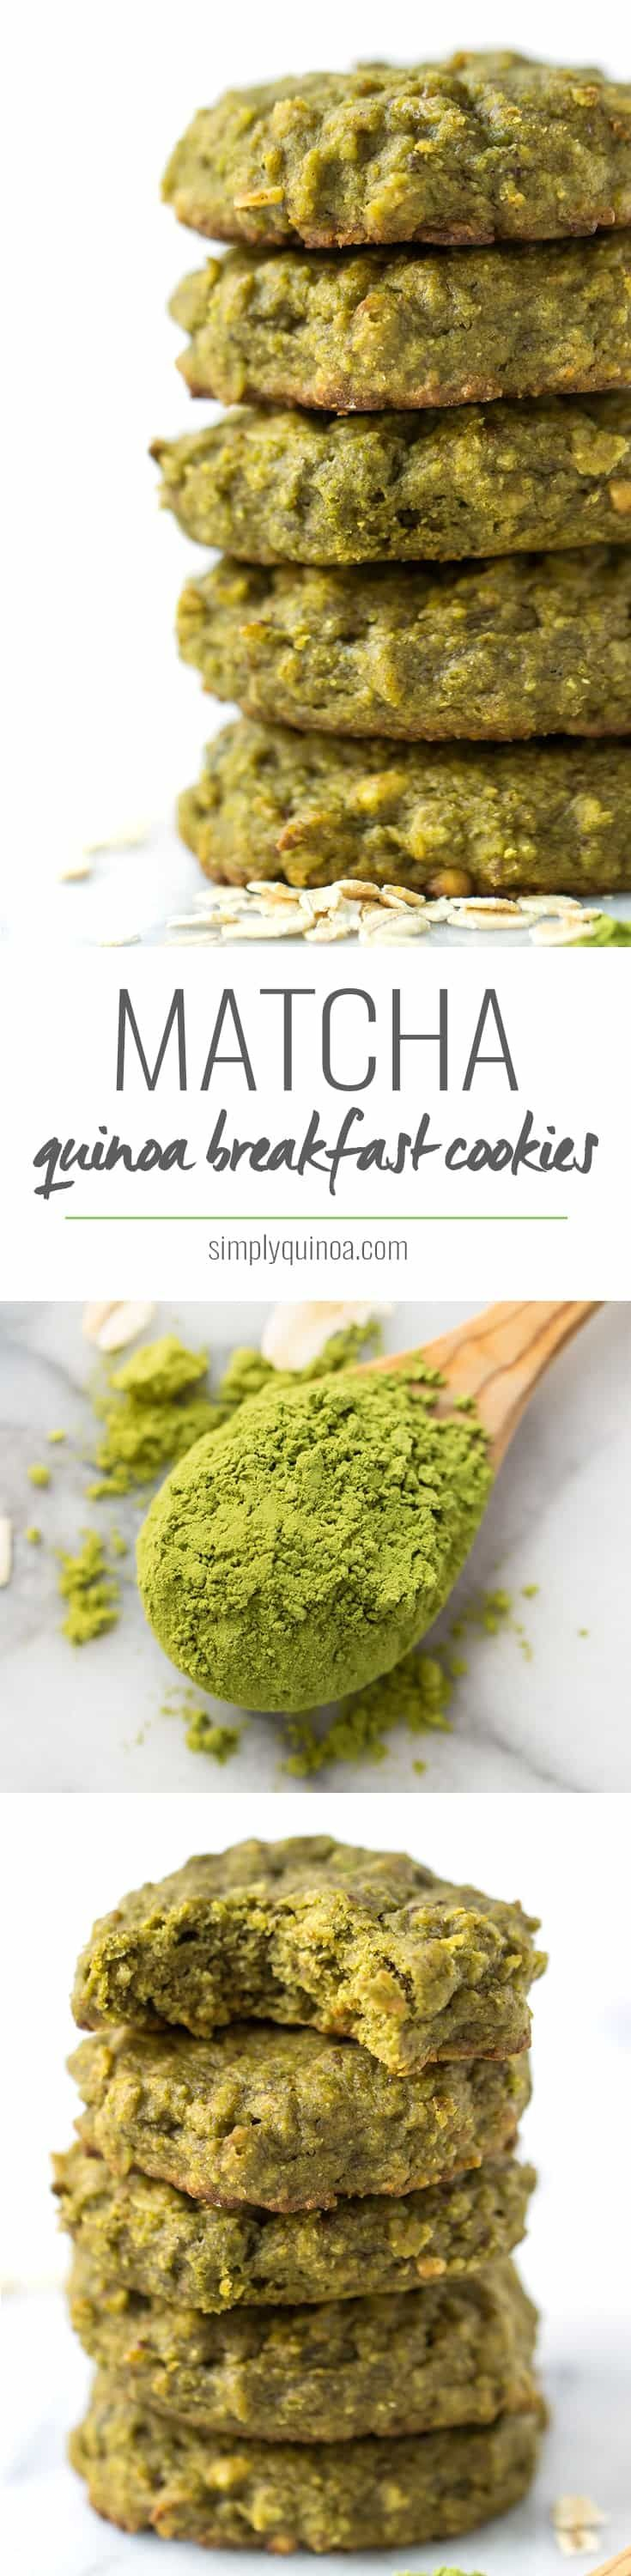 These matcha quinoa breakfast cookies are the perfect way to start your day. With fiber, protein and tons of antioxidants, they're energizing and healthy!